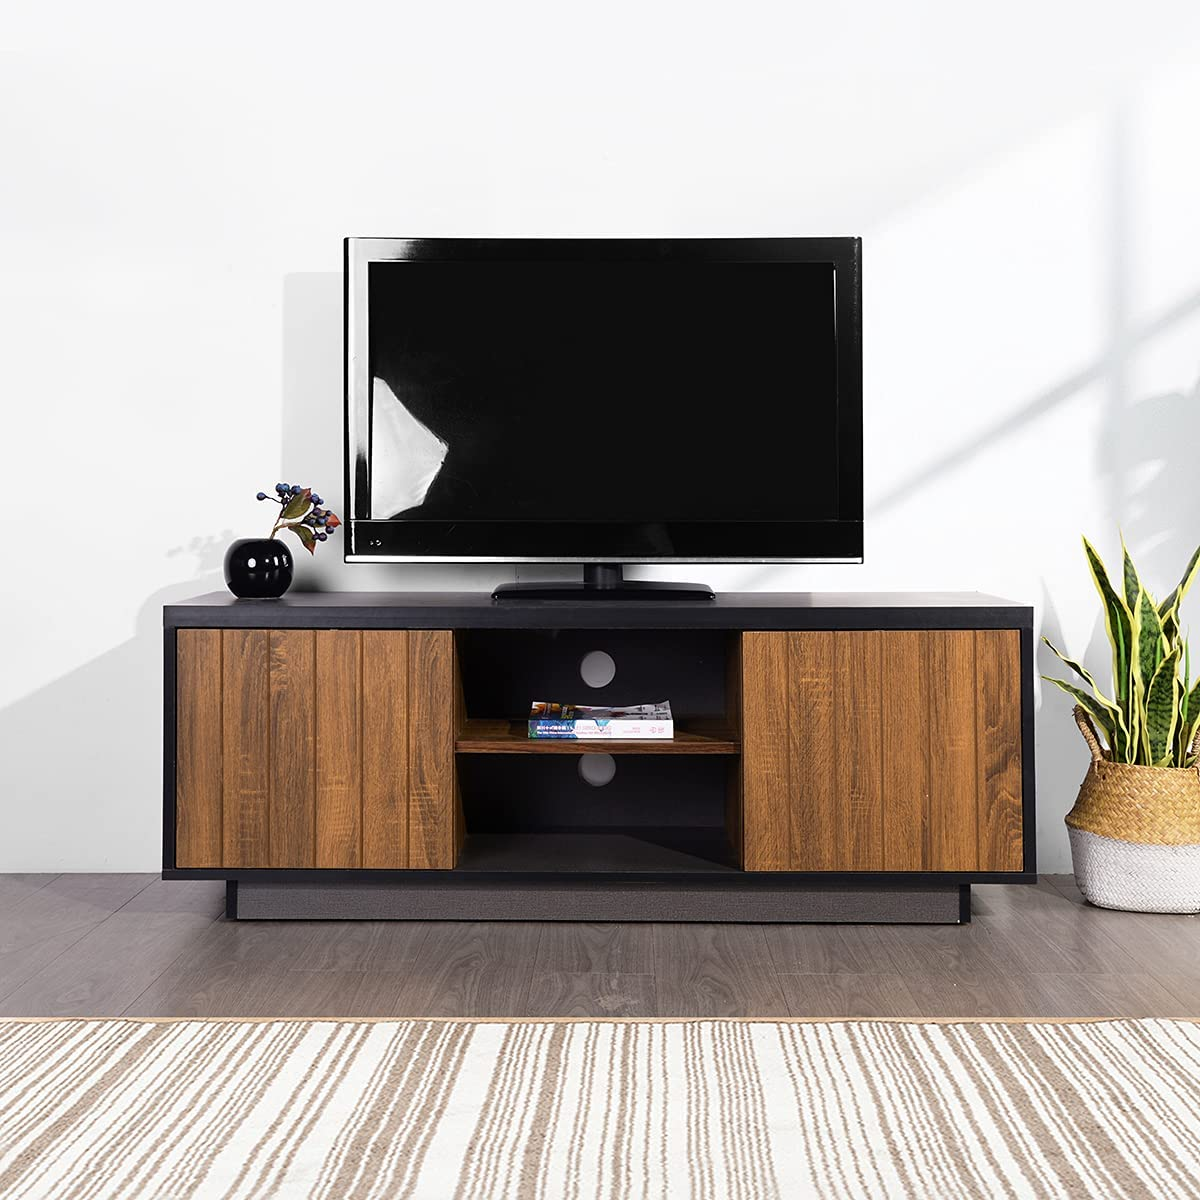 Knocbel Mid-Century Modern 47.2in Online limited product Max 52% OFF TV Console Ta Stand Television